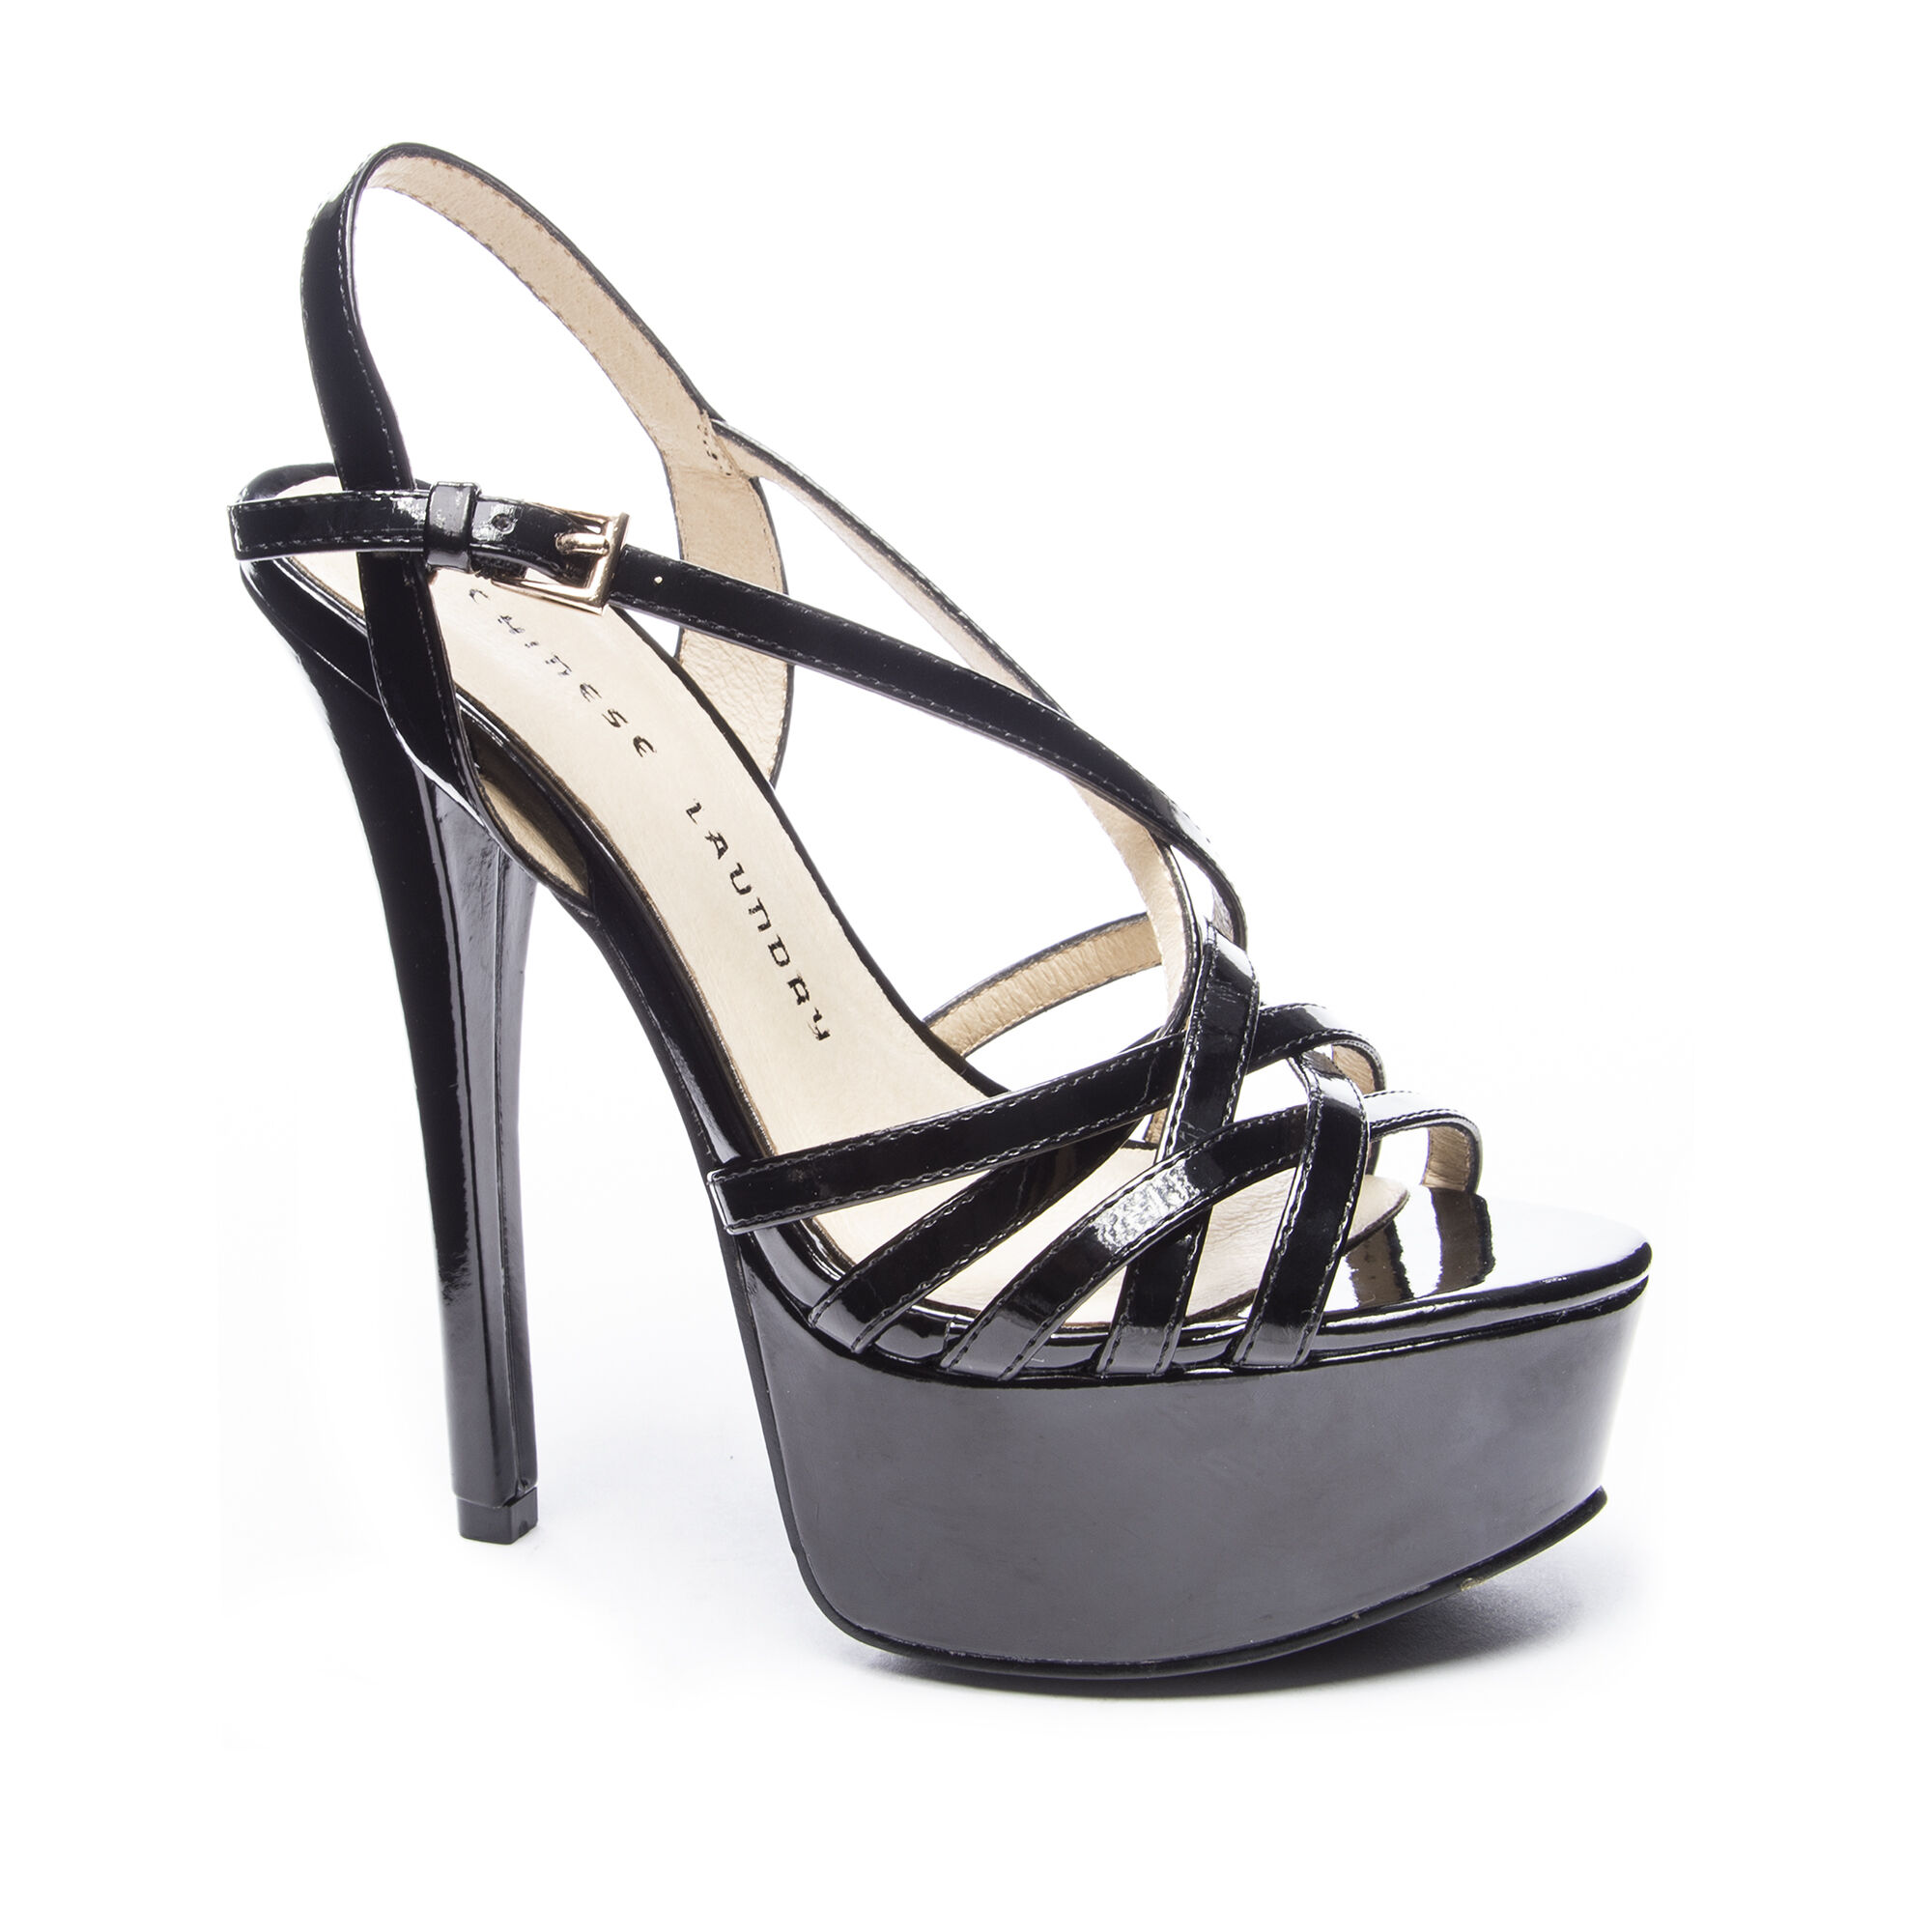 bb051d3f244 Teaser Platform Stiletto Sandals